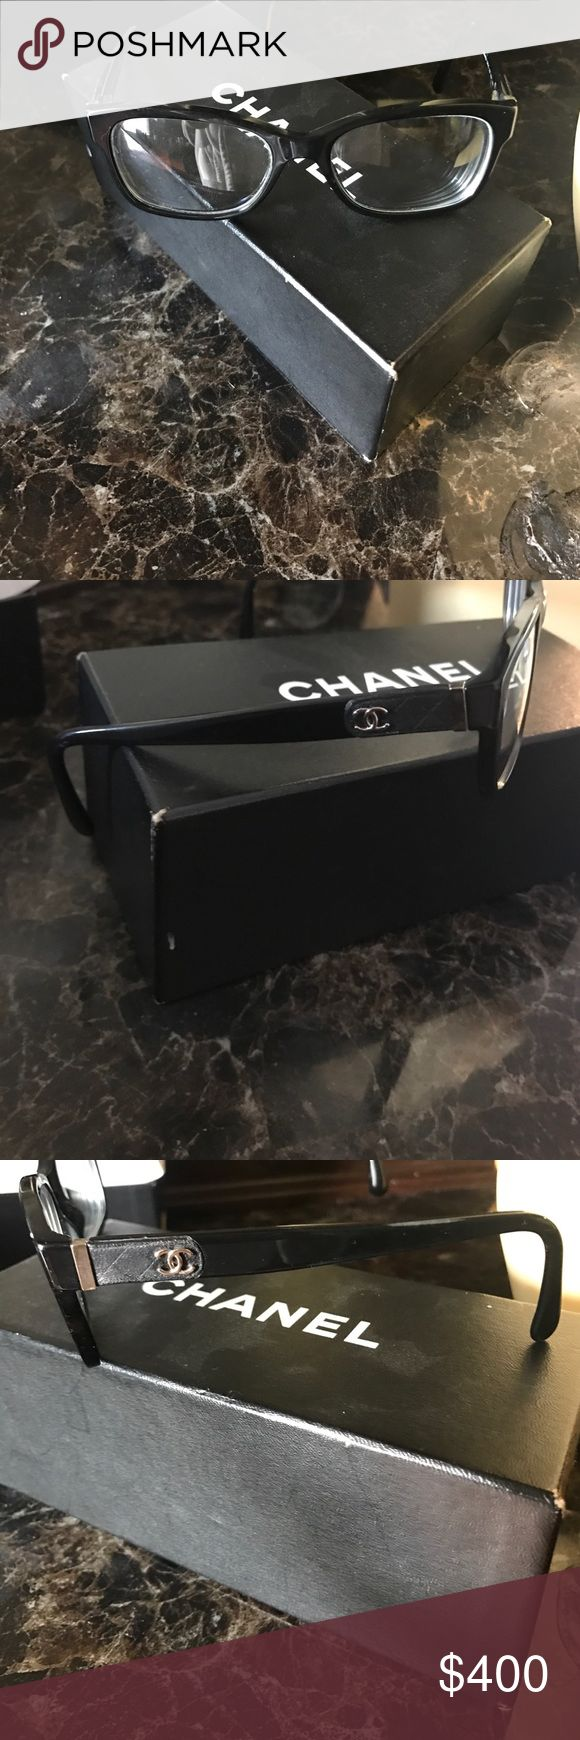 Real Chanel prescription eyeglasses Real prescription Chanel eyeglasses worn only a couple times originally 550 with box and case CHANEL Accessories Glasses